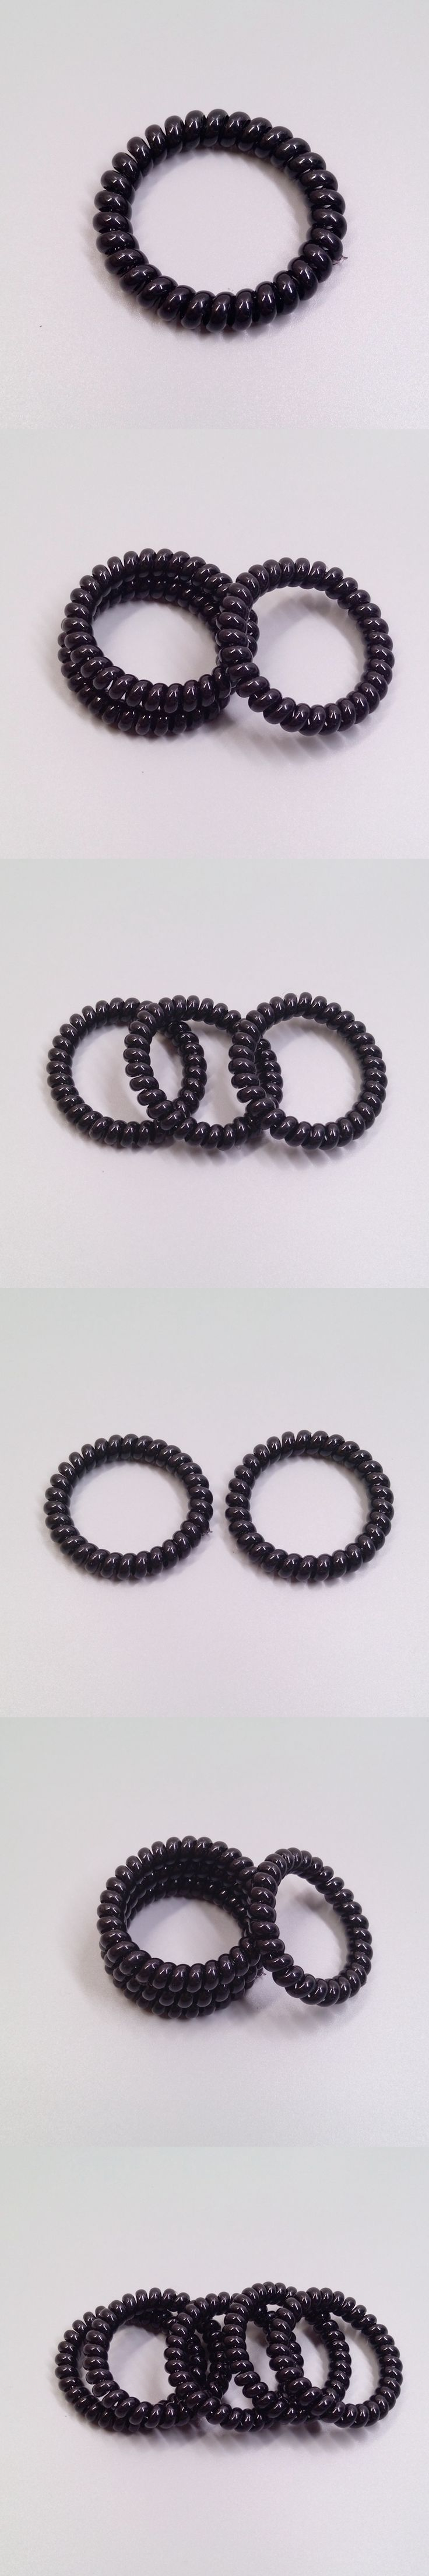 Telephone Lines,Hair Gum  , Hair Accessories, Hair Bands For Women Ring Rope, Elastic Rubber Black Color without trace,rhombus ,